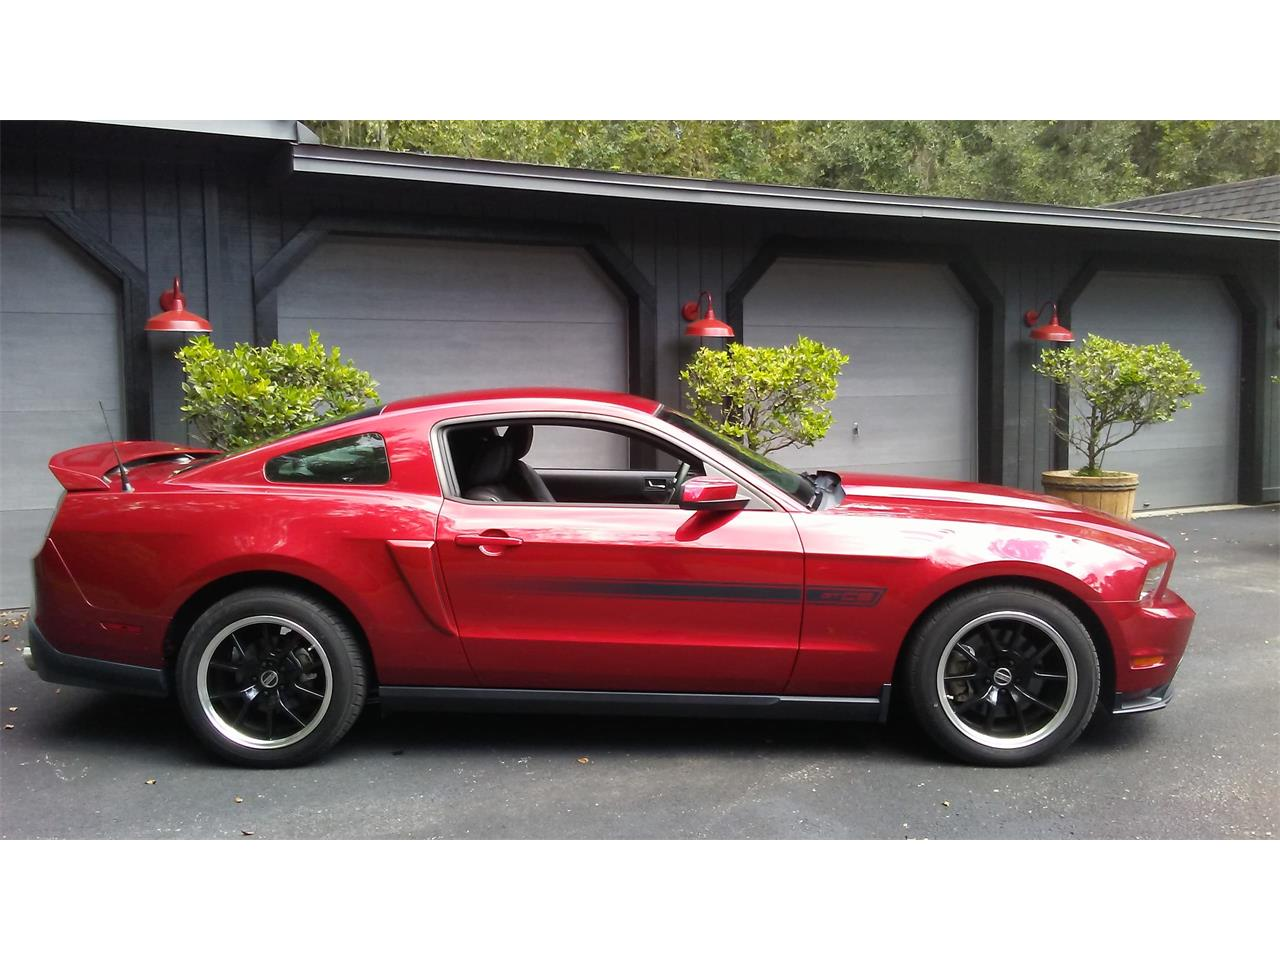 2011 Ford Mustang Gt Cs California Special For Sale Classiccars